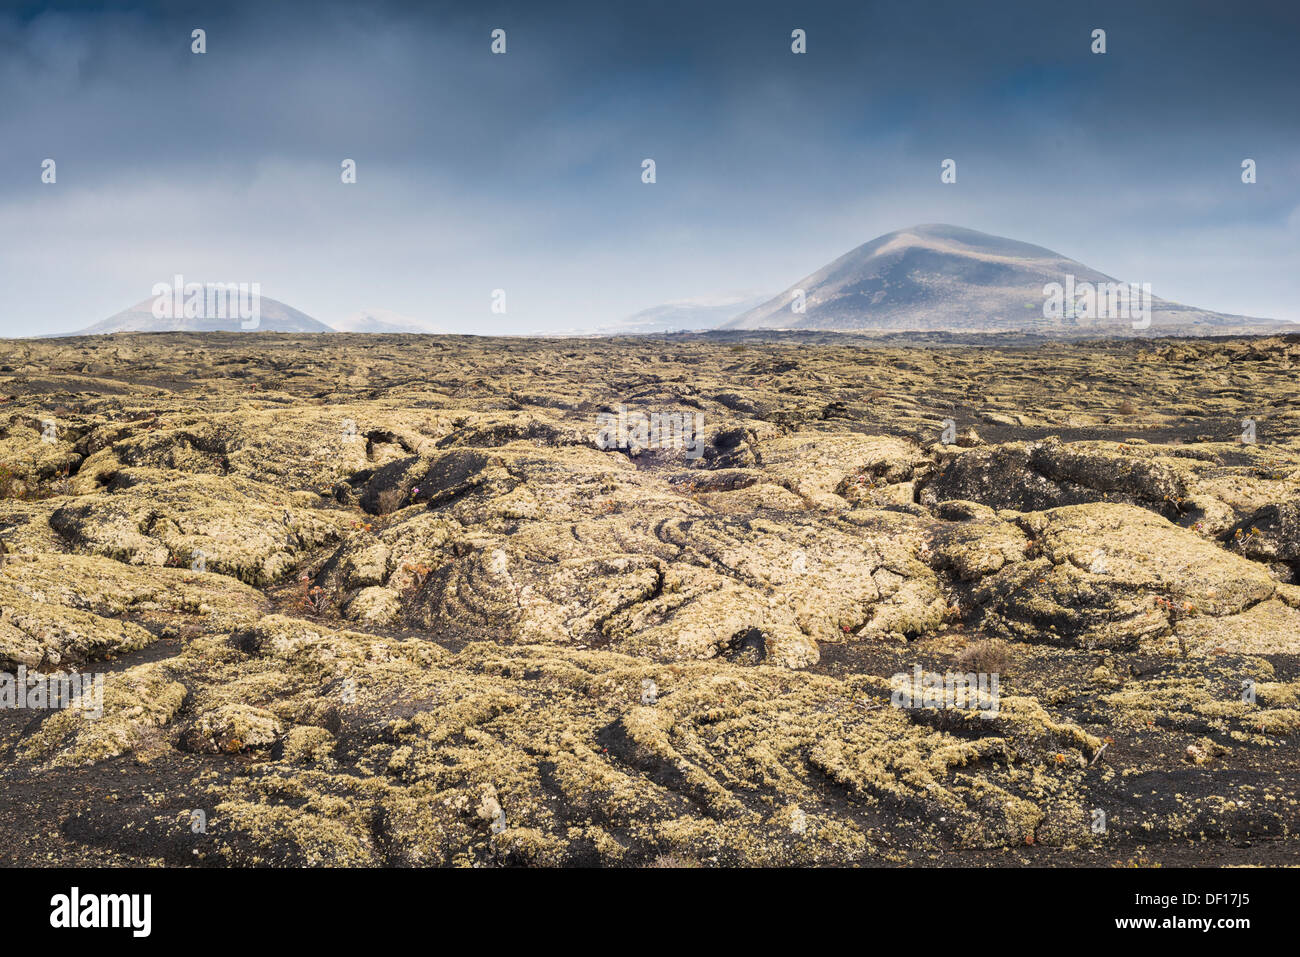 Lichen-covered pahoehoe lava near Masdache, Lanzarote, with Montaña Negra in the distance - Stock Image